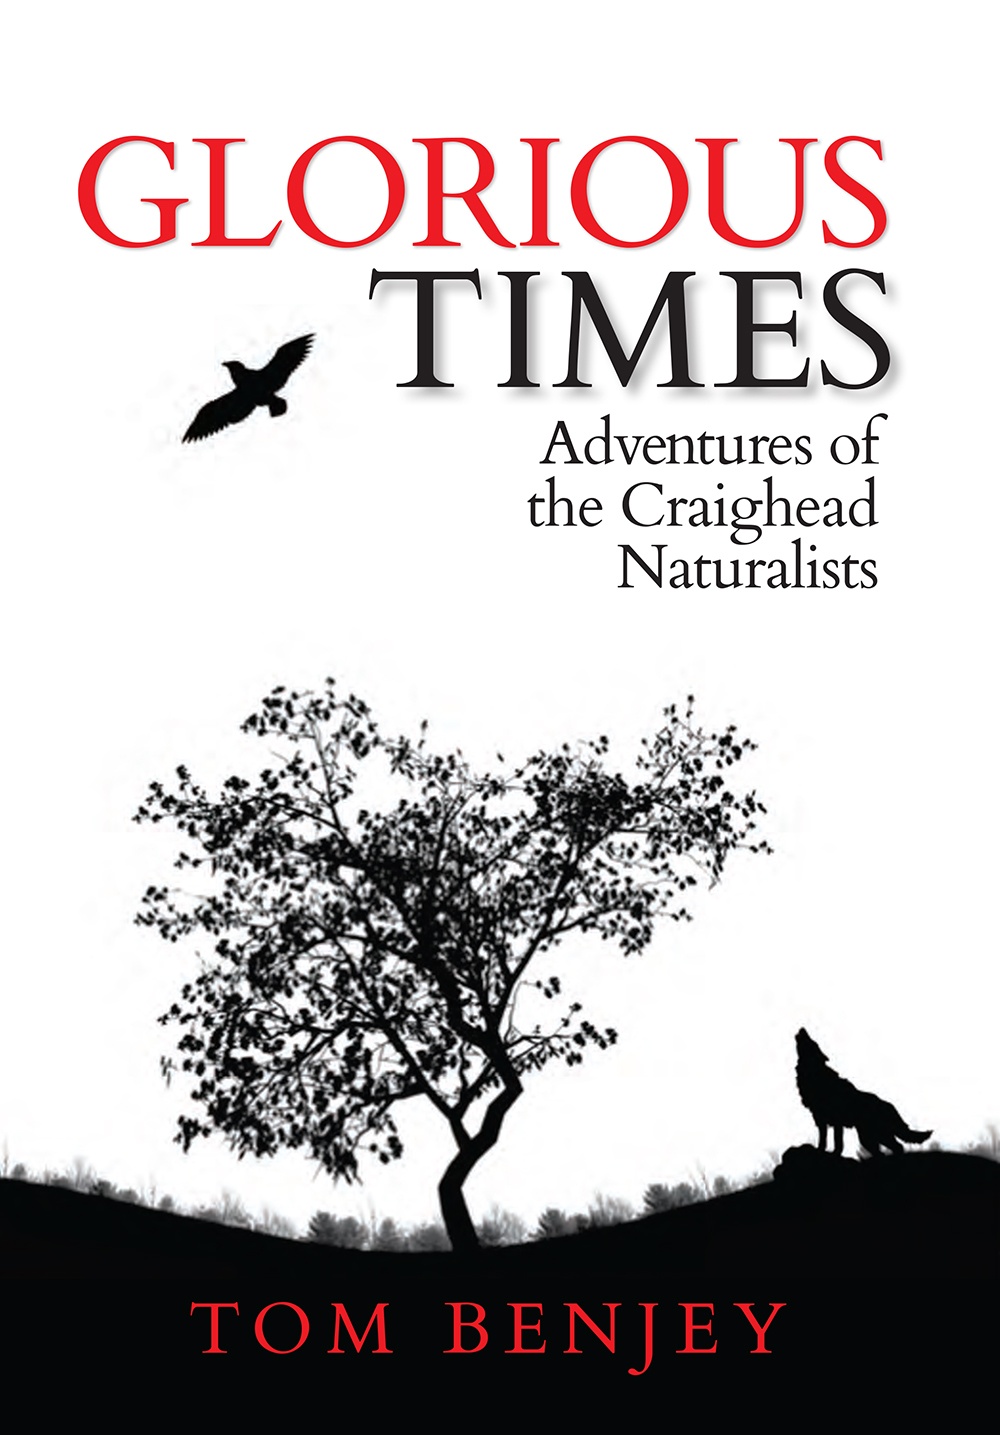 Glorious Times: Adventures of the Craighead Naturalists by Tom Benjey